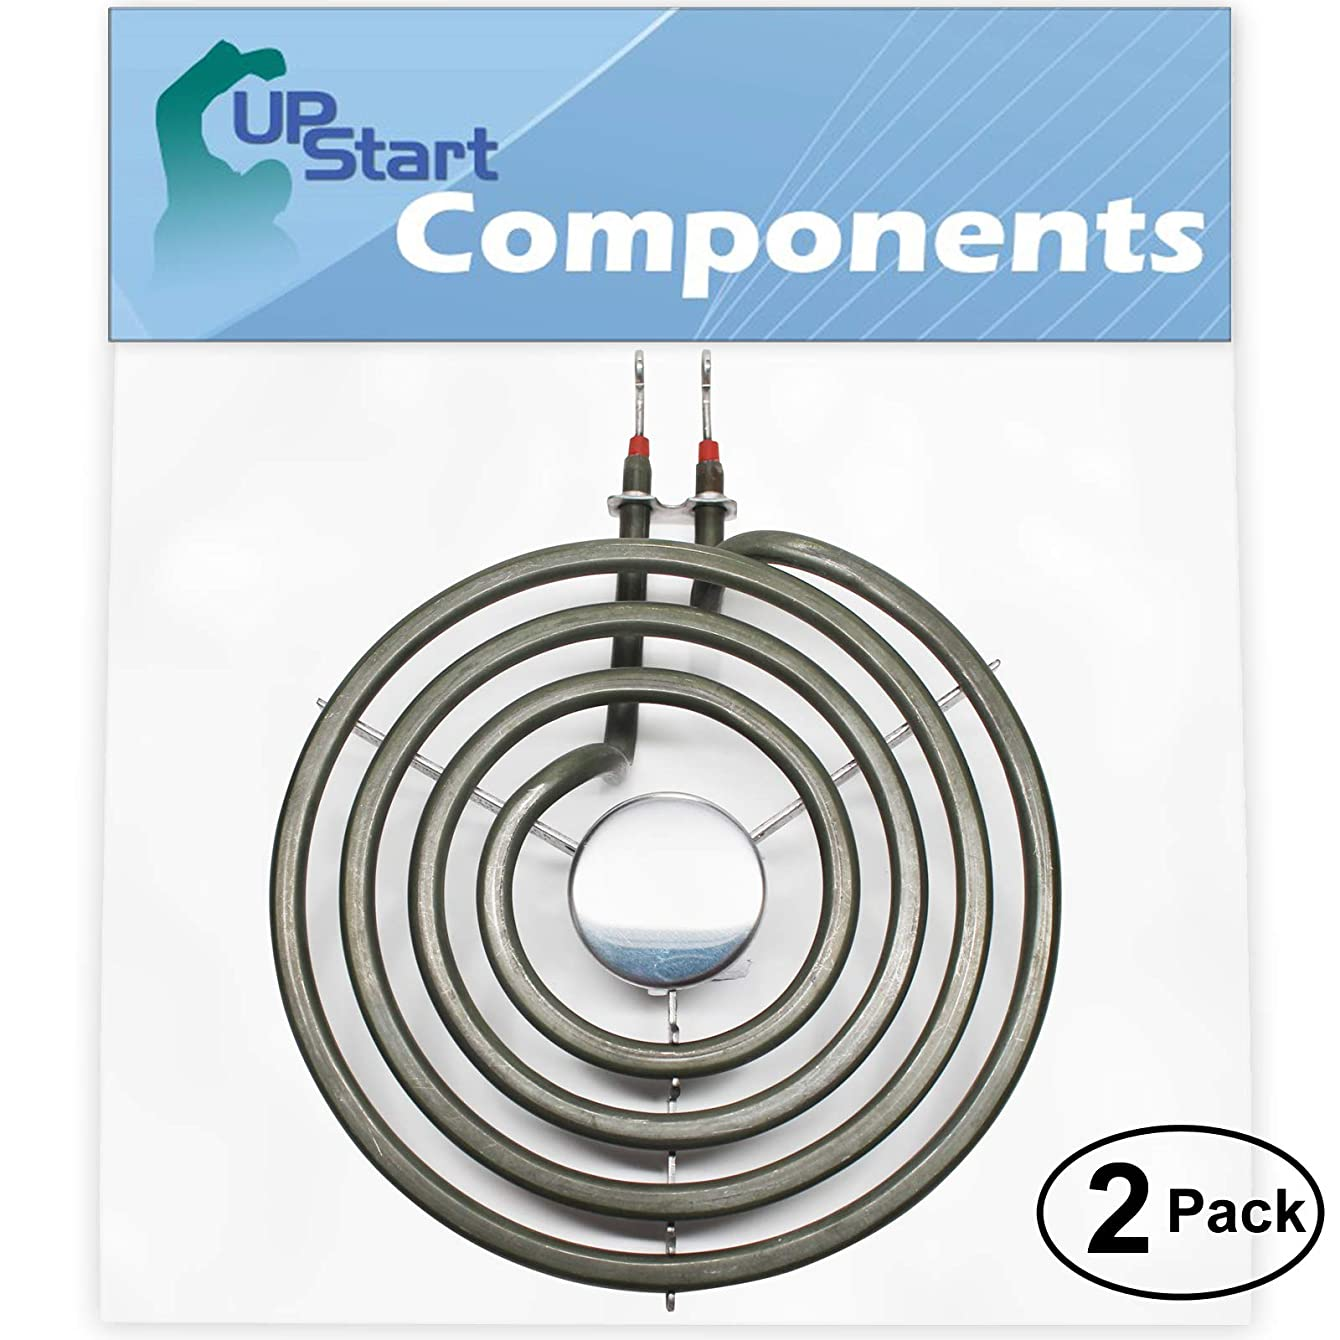 2-Pack Replacement Whirlpool RF385PCWW1 6 inch 4 Turns Surface Burner Element - Compatible Whirlpool 660532 Heating Element for Range, Stove & Cooktop